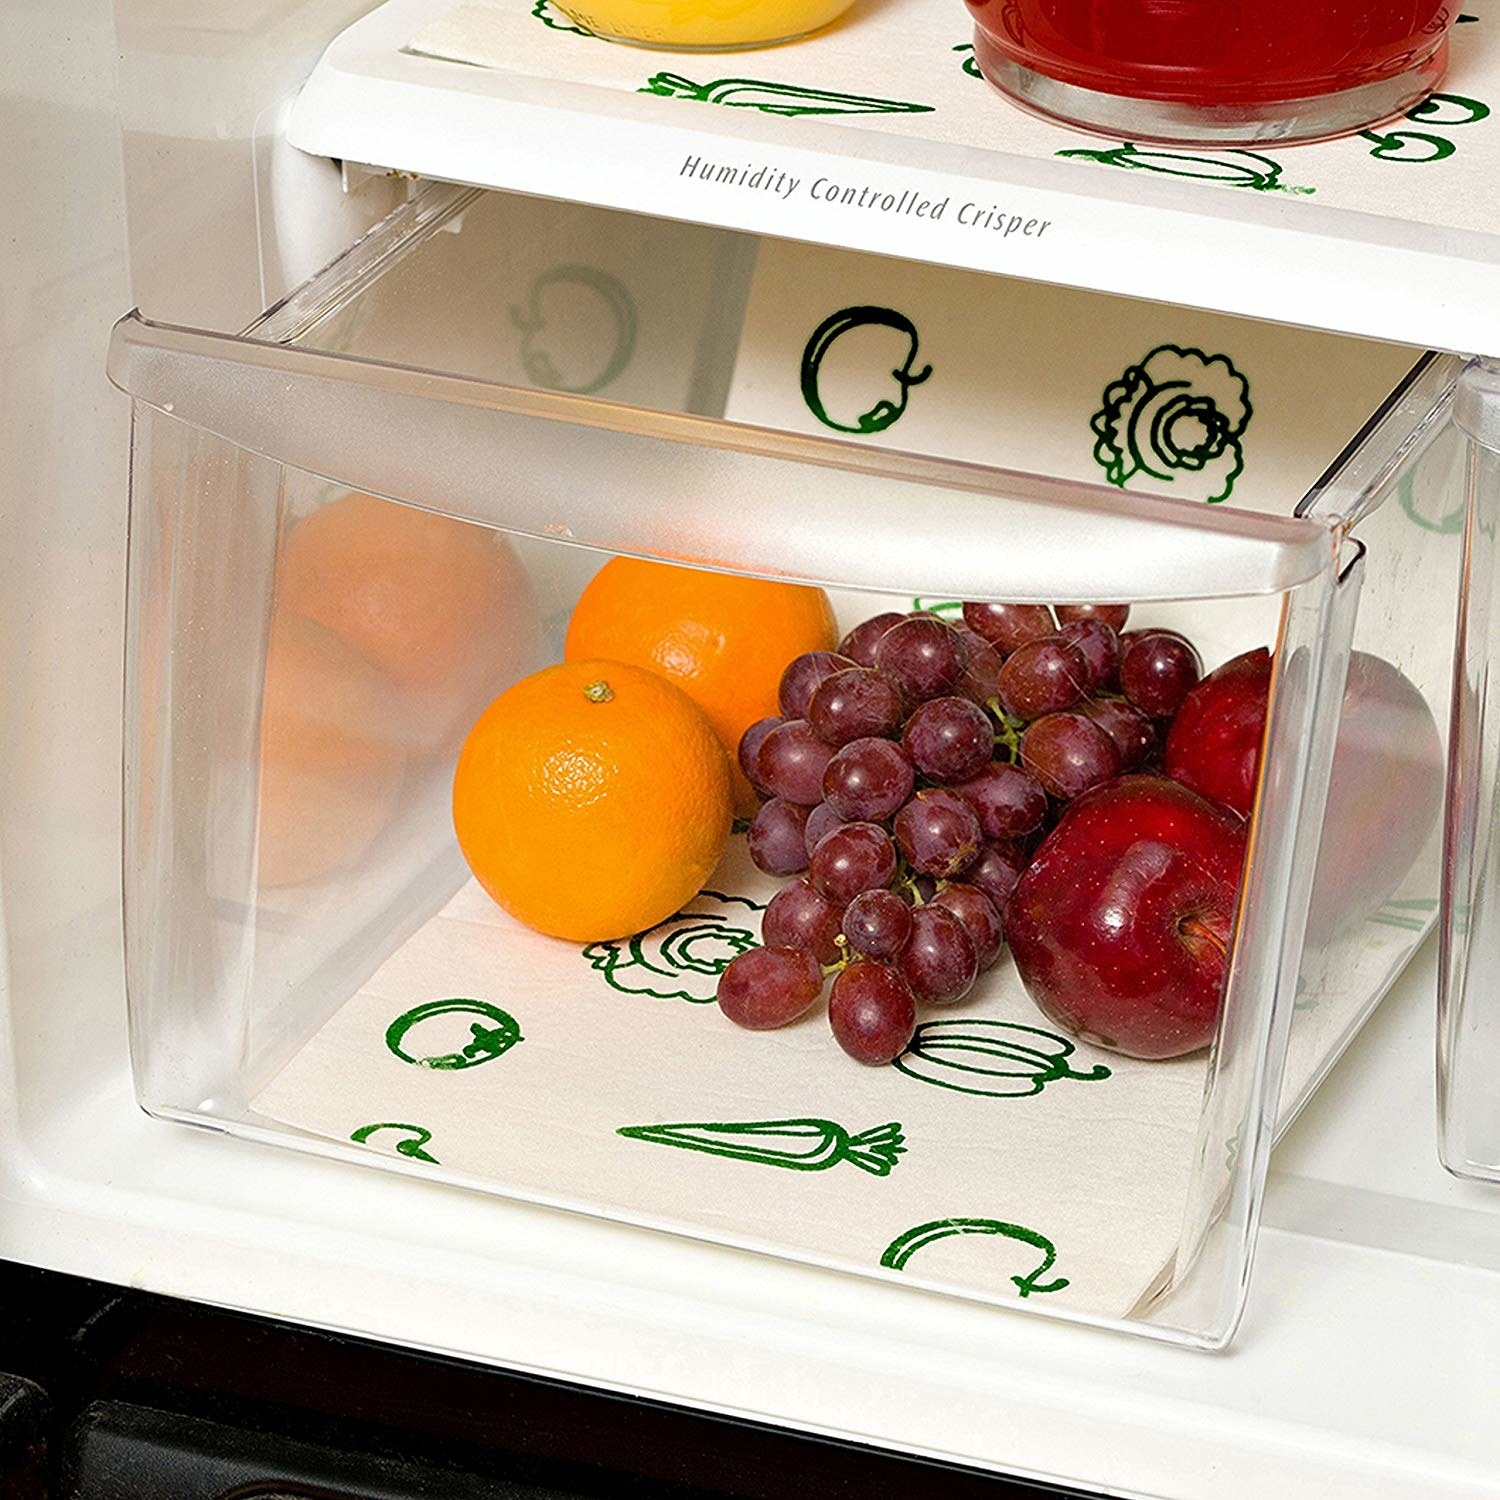 fridge produce bin with the liner in the bottom